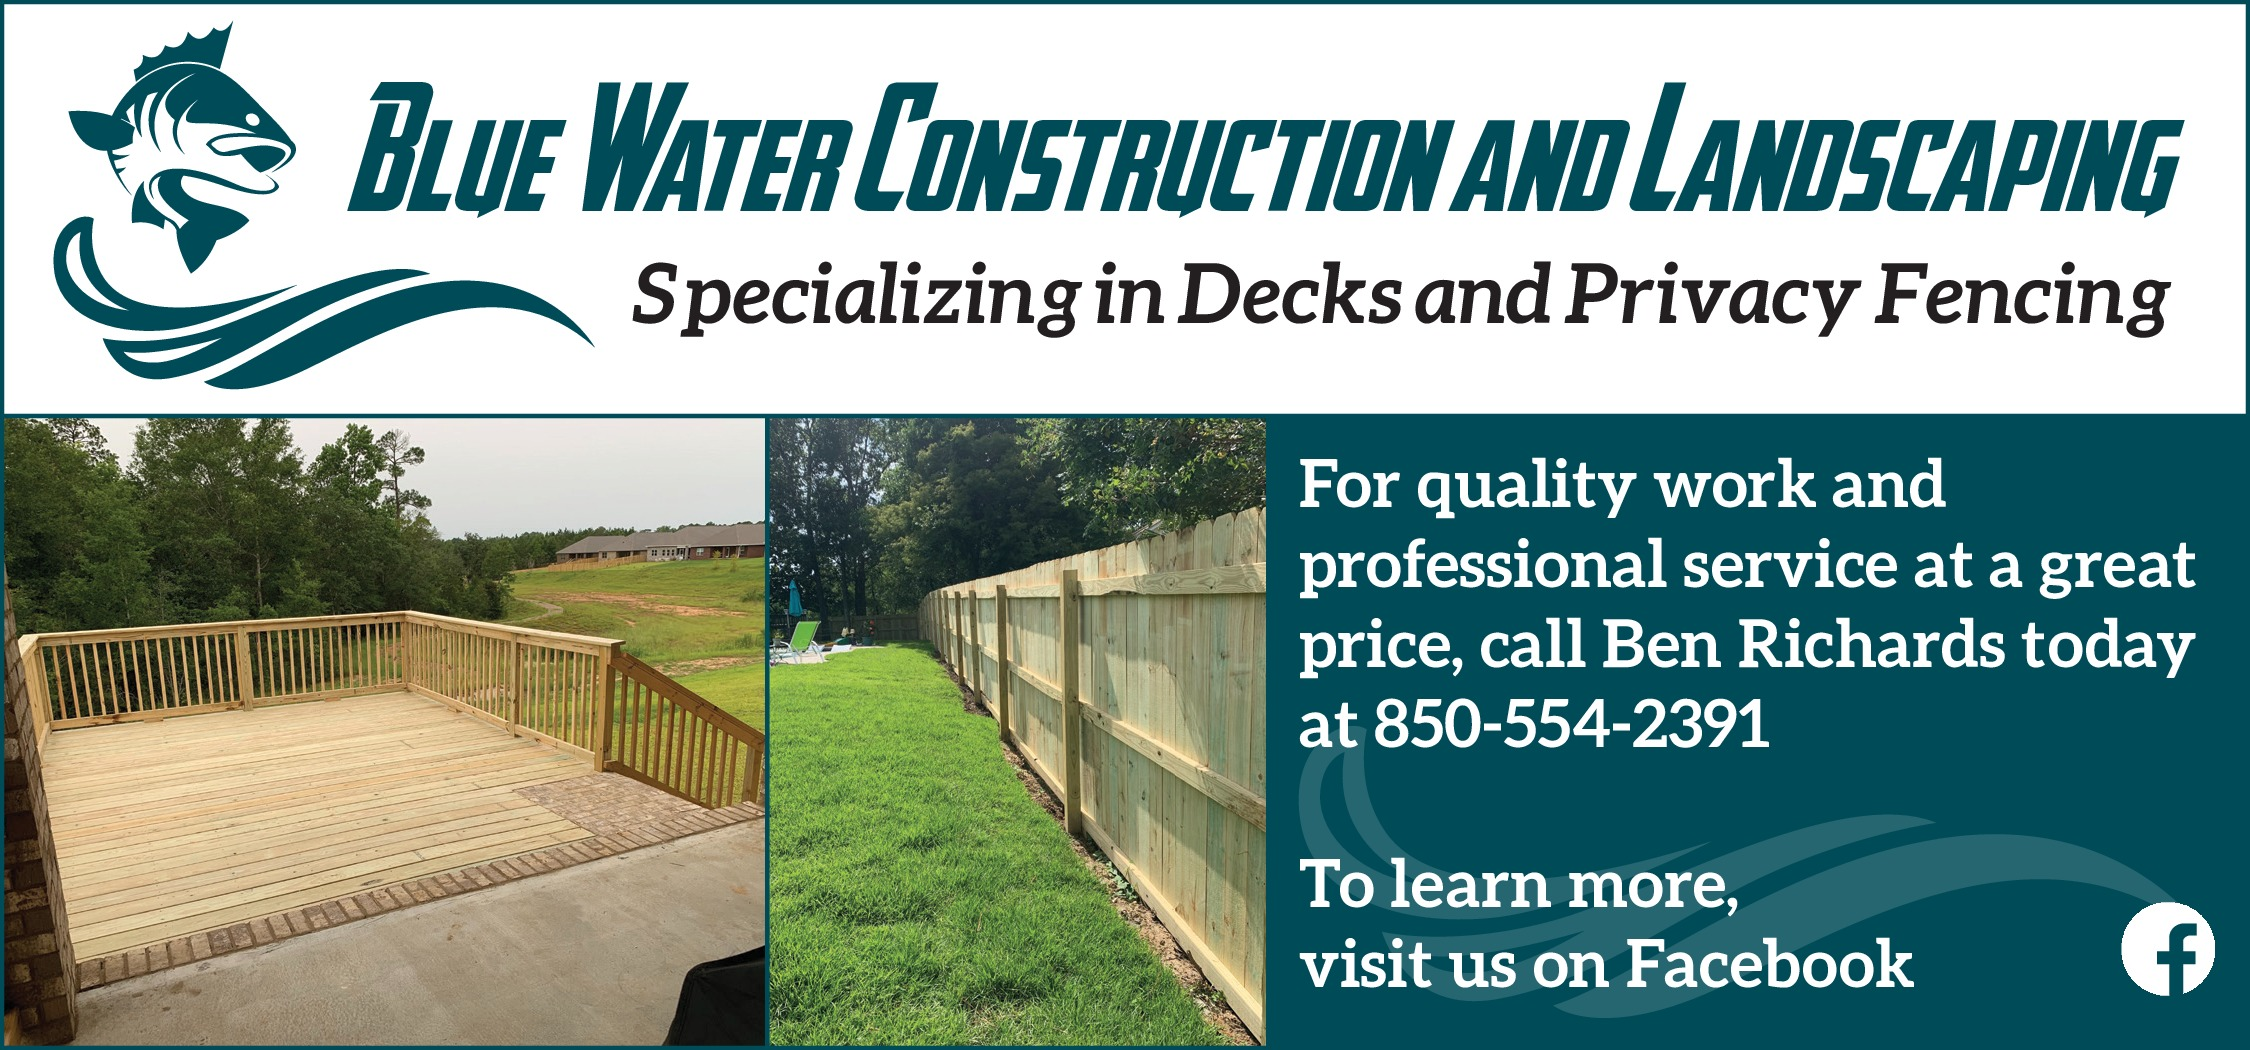 Blue Water Construction and Landscaping logo